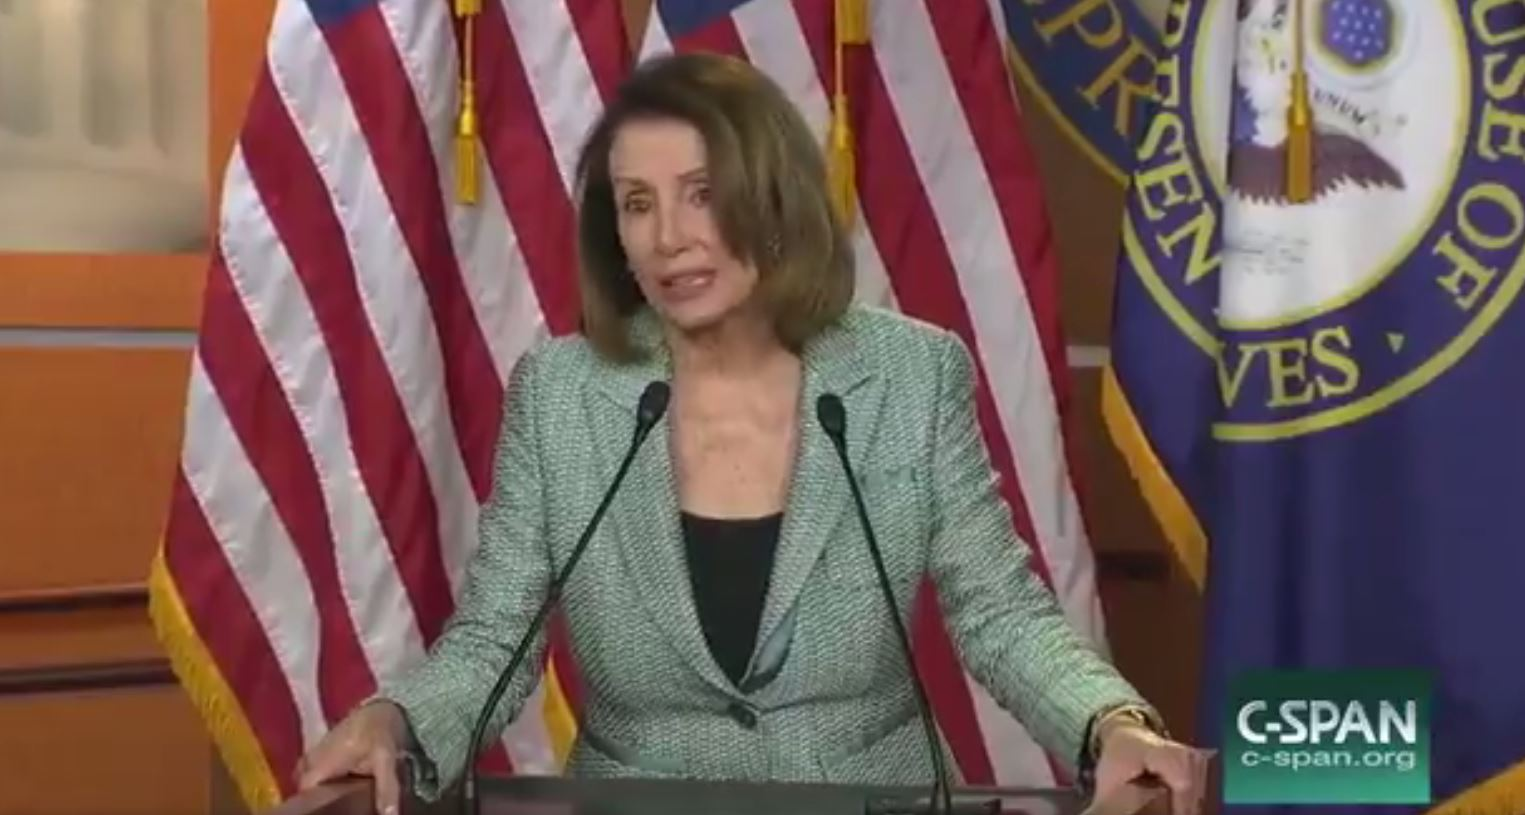 Photo of Power-Tripping Pelosi: We Can't Let the People Decide, That's Dangerous